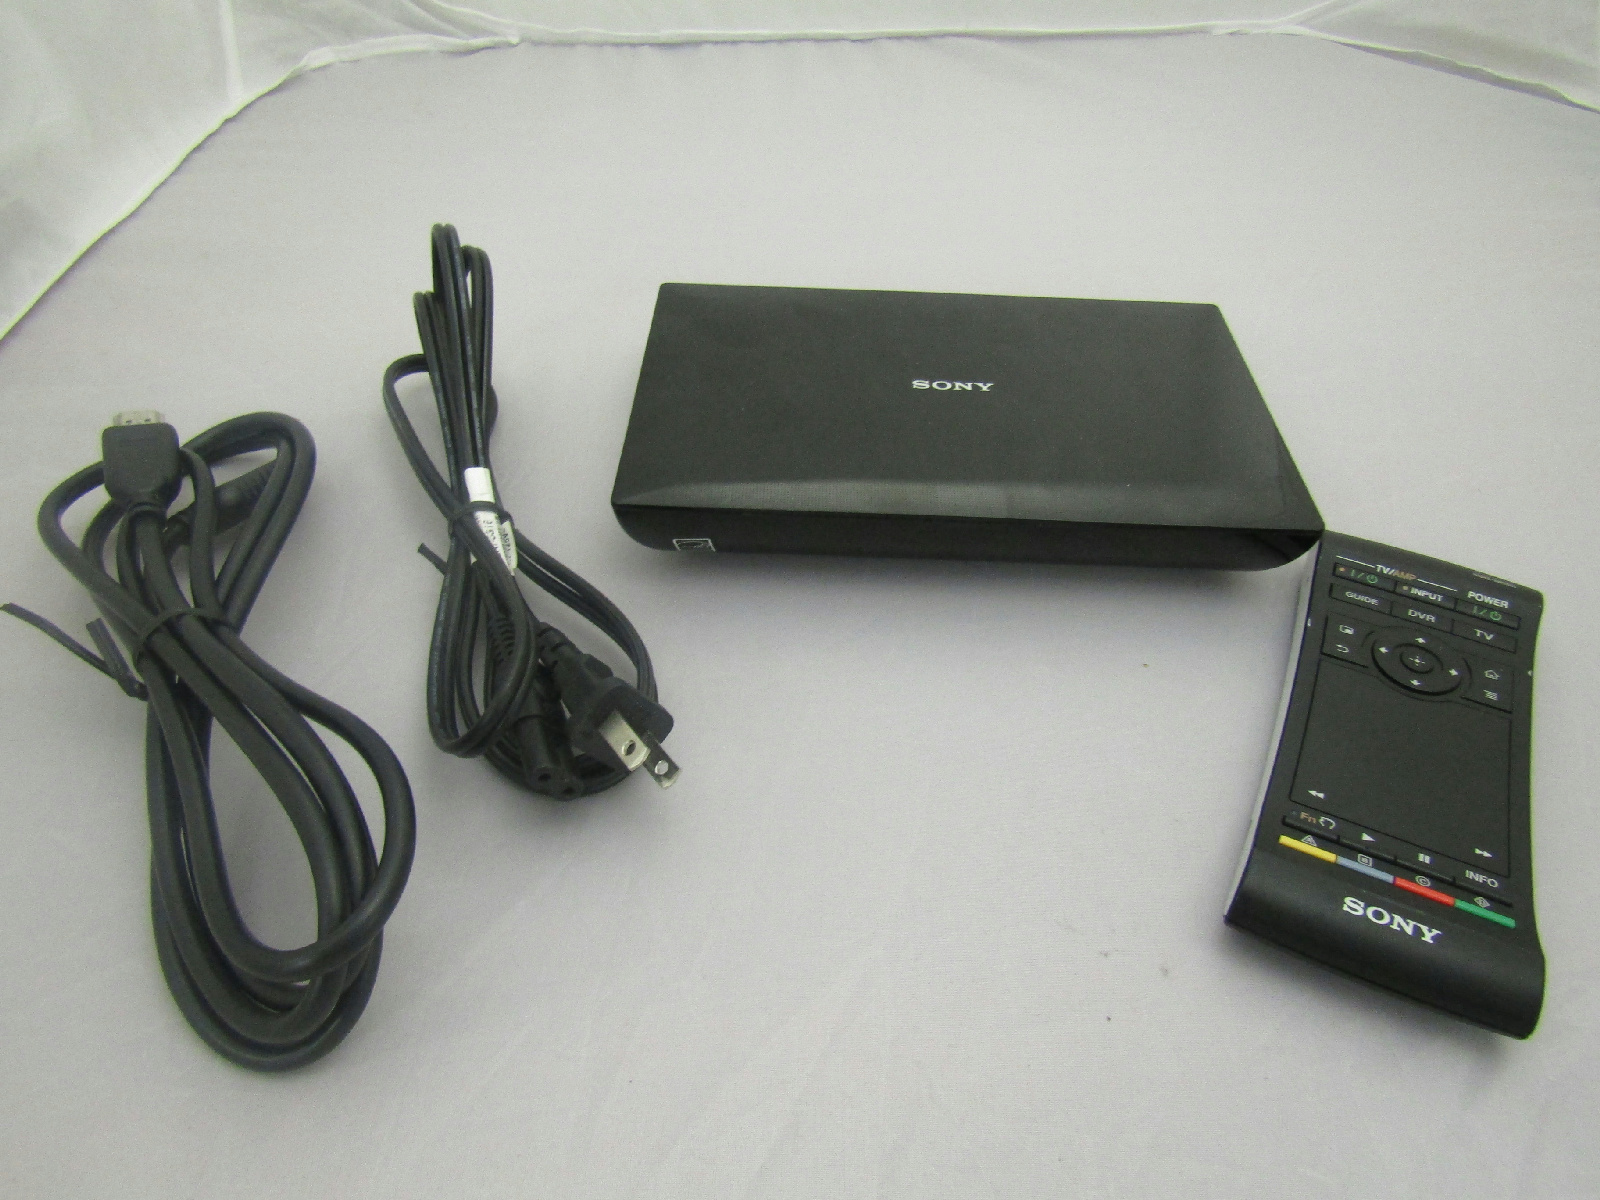 sony nsz gs7 digital media streamer w remote hdmi cord. Black Bedroom Furniture Sets. Home Design Ideas